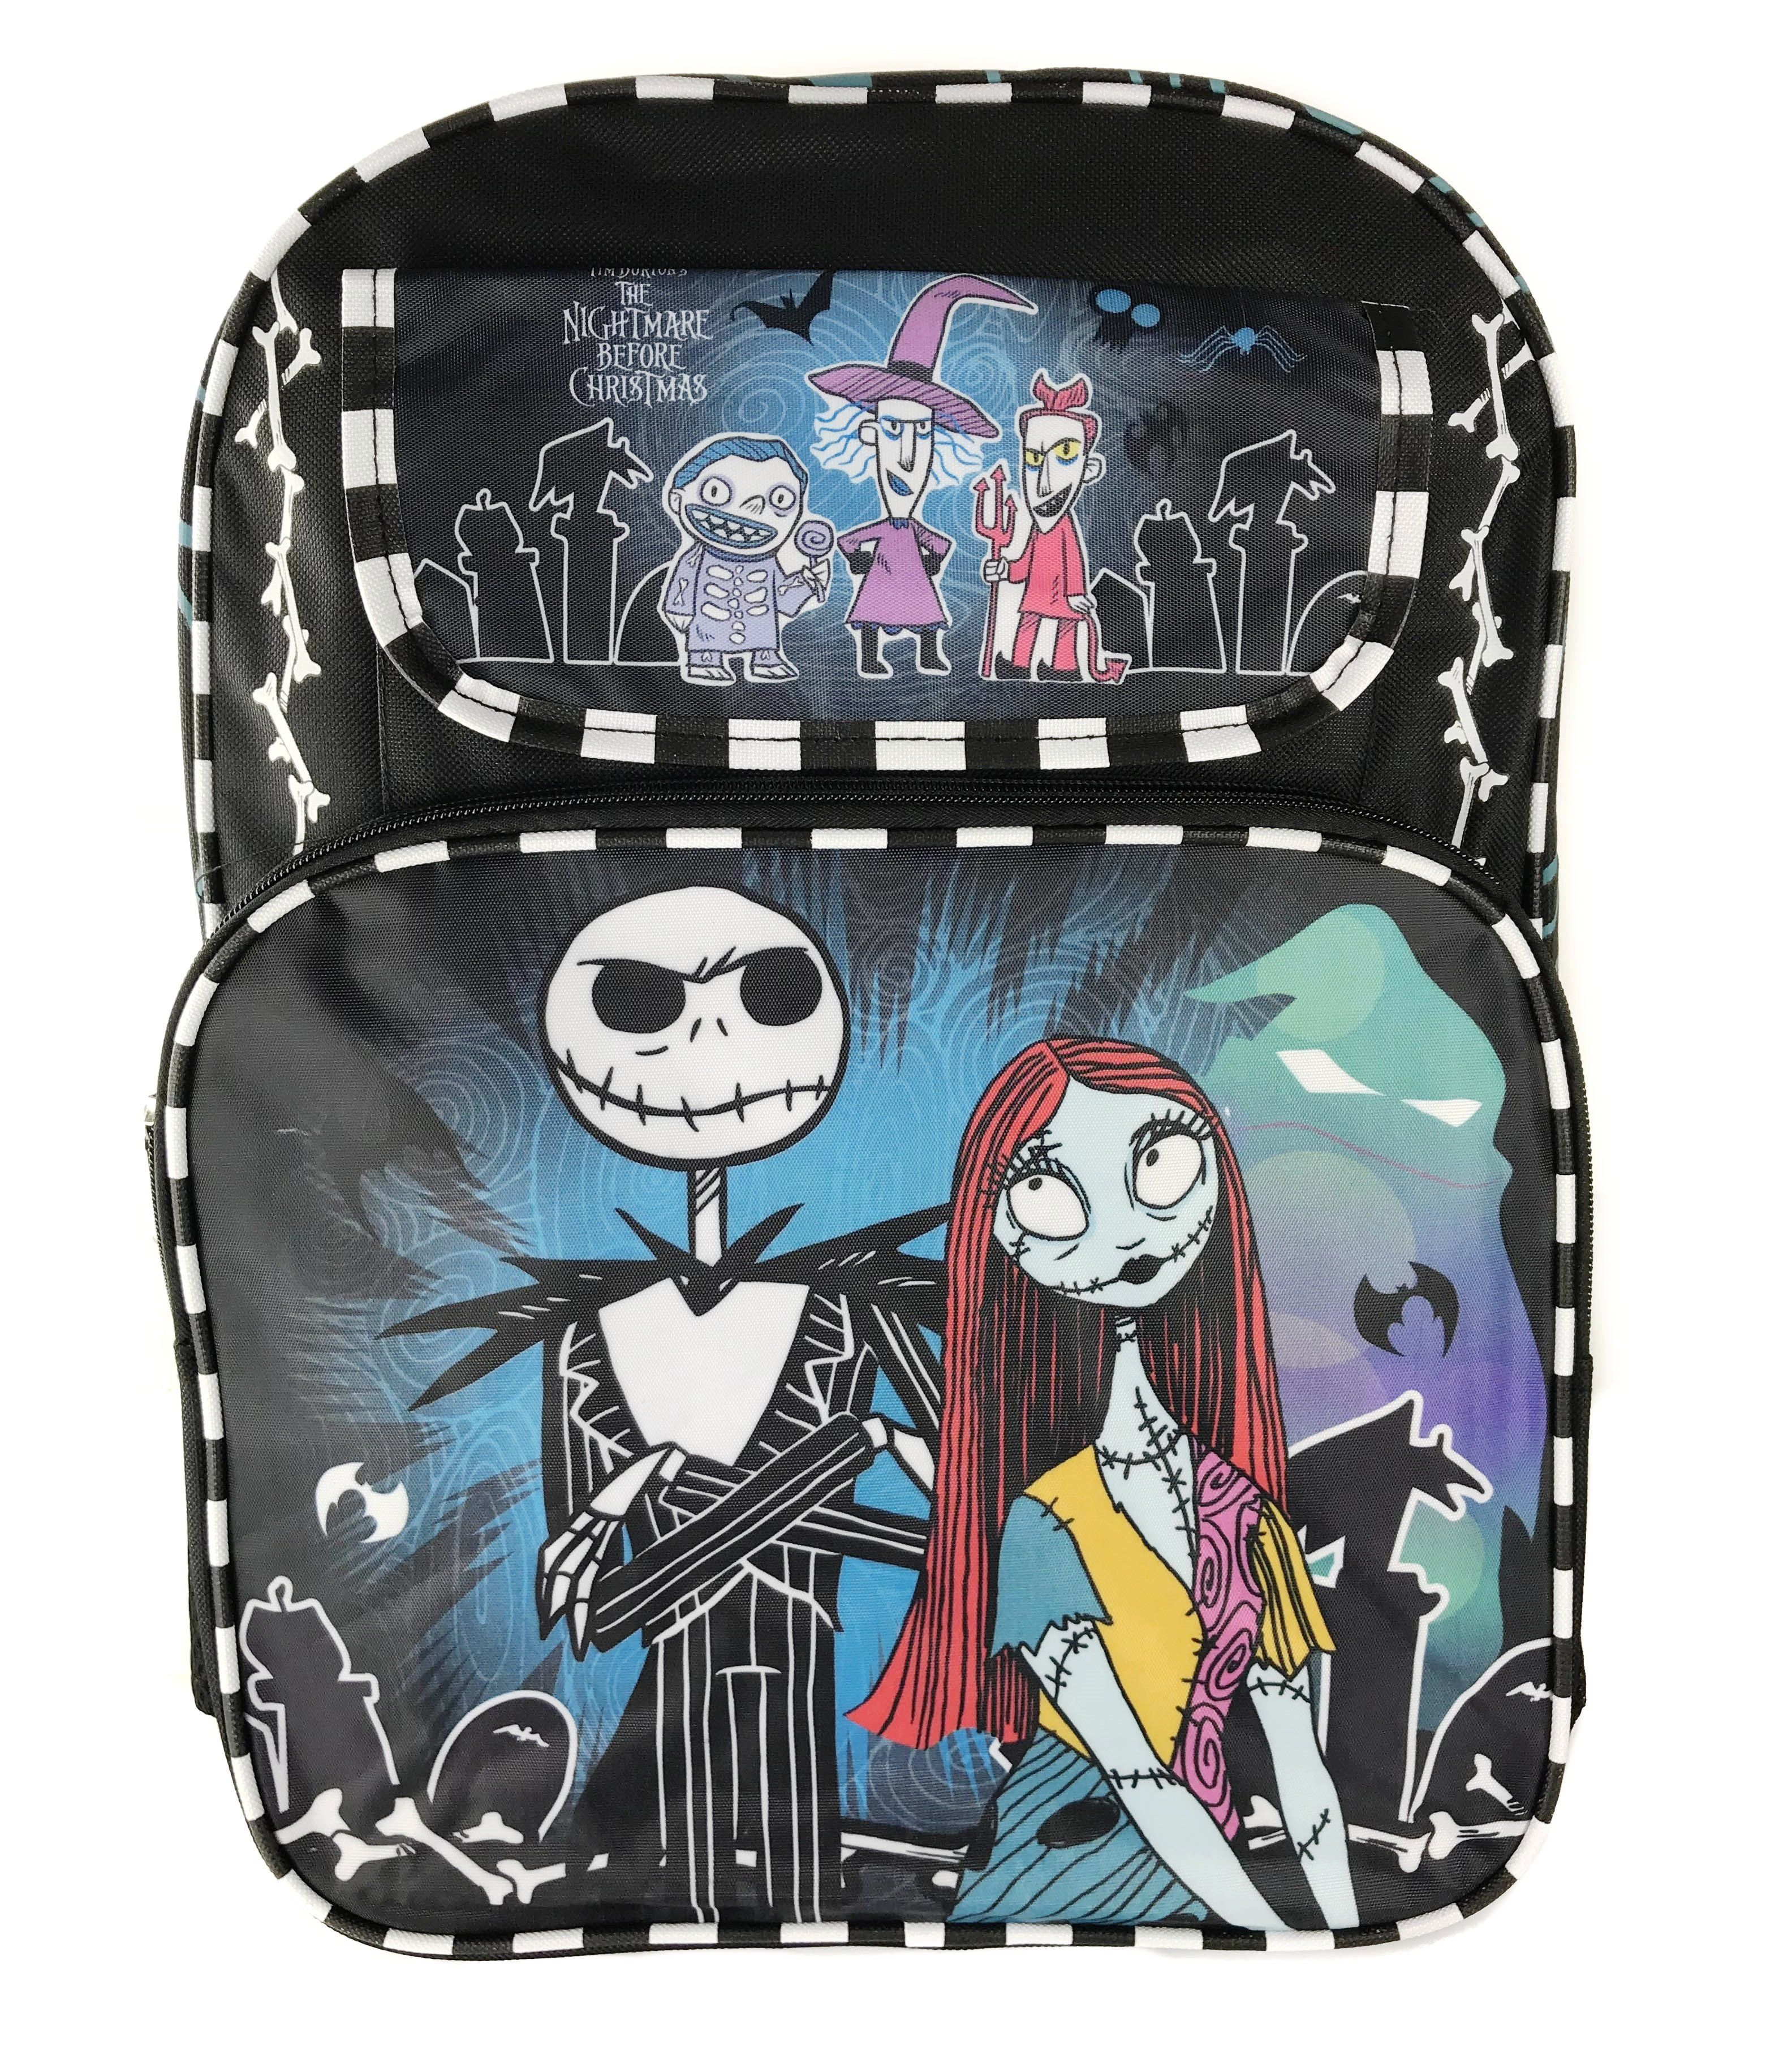 c68be5b8ae2 The Nightmare Before Christmas Backpack in 2019